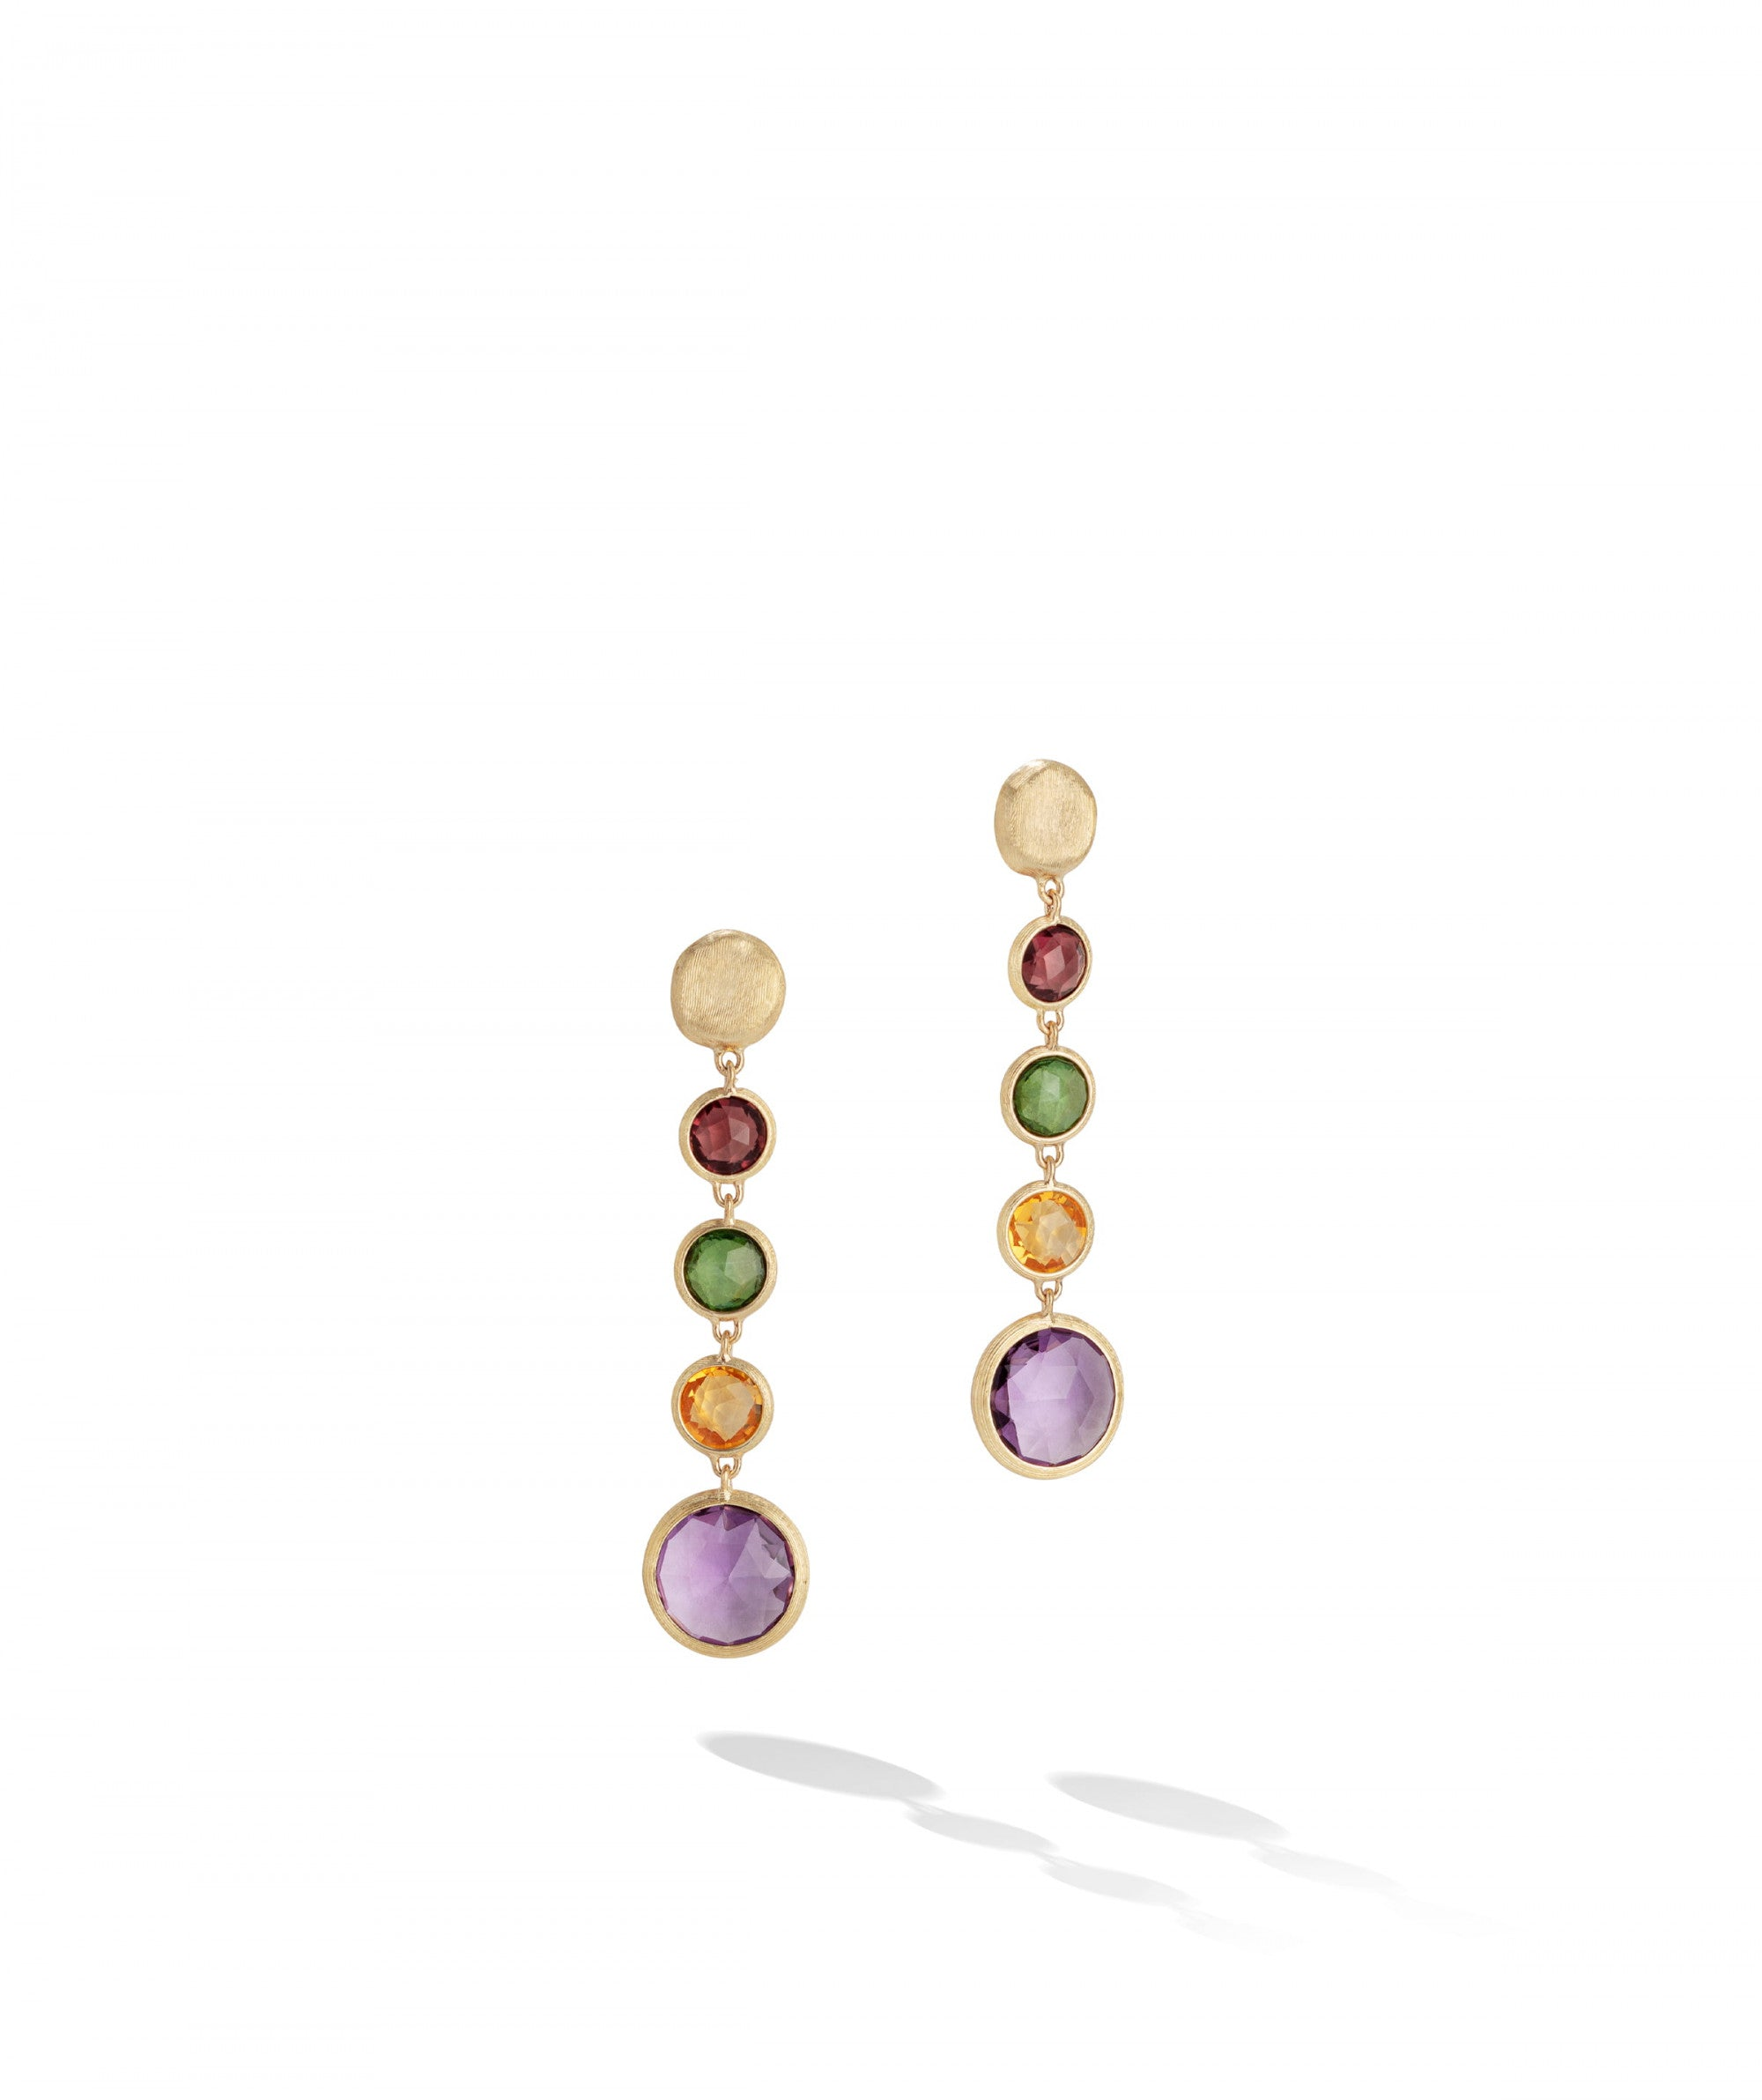 Jaipur Colour Drop Earrings in 18k Yellow Gold with Mixed Gemstones - Orsini Jewellers NZ